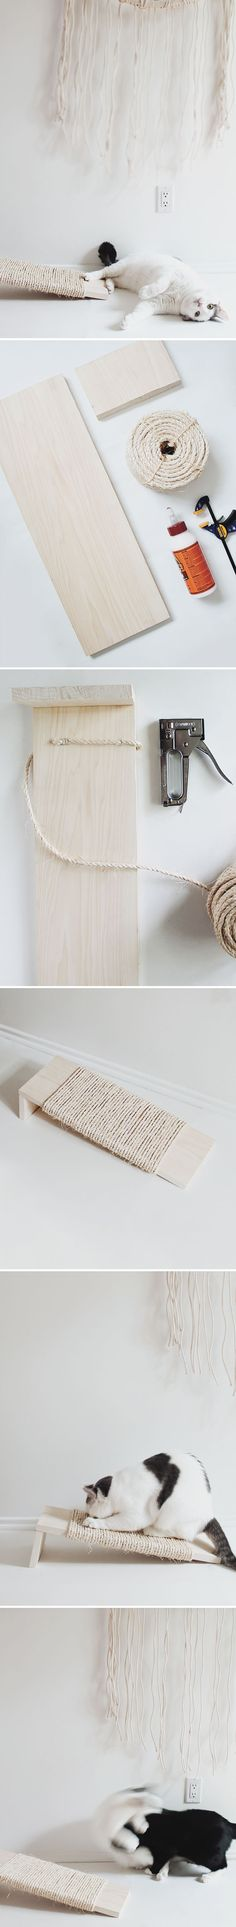 Claw Control: The DIY Cat Scratching Post by Margot Guralnick